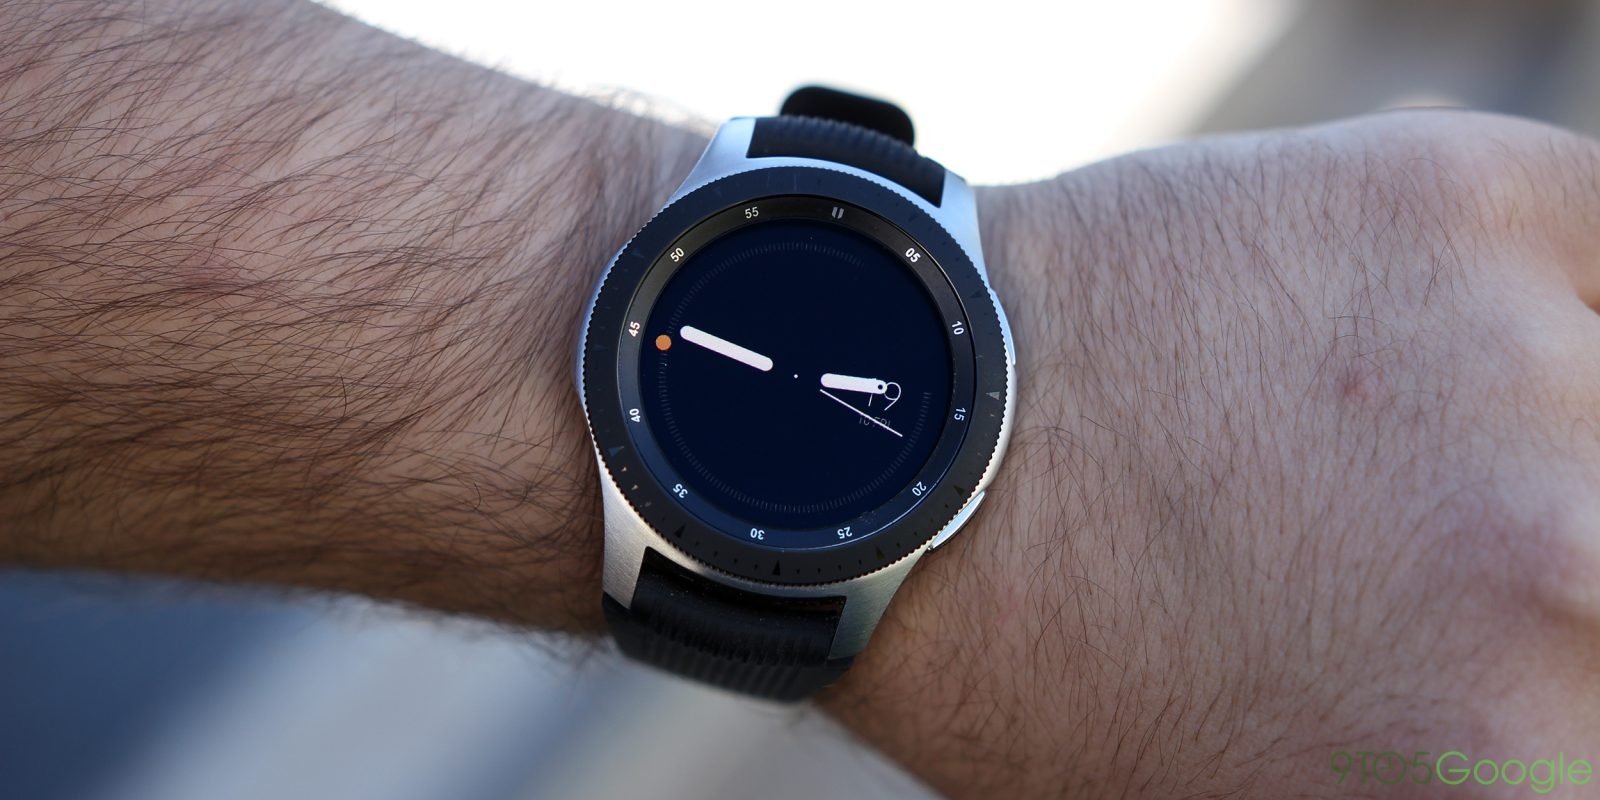 [Update: Gear Sport] Latest Samsung Galaxy Watch update improves alarms and swim tracking